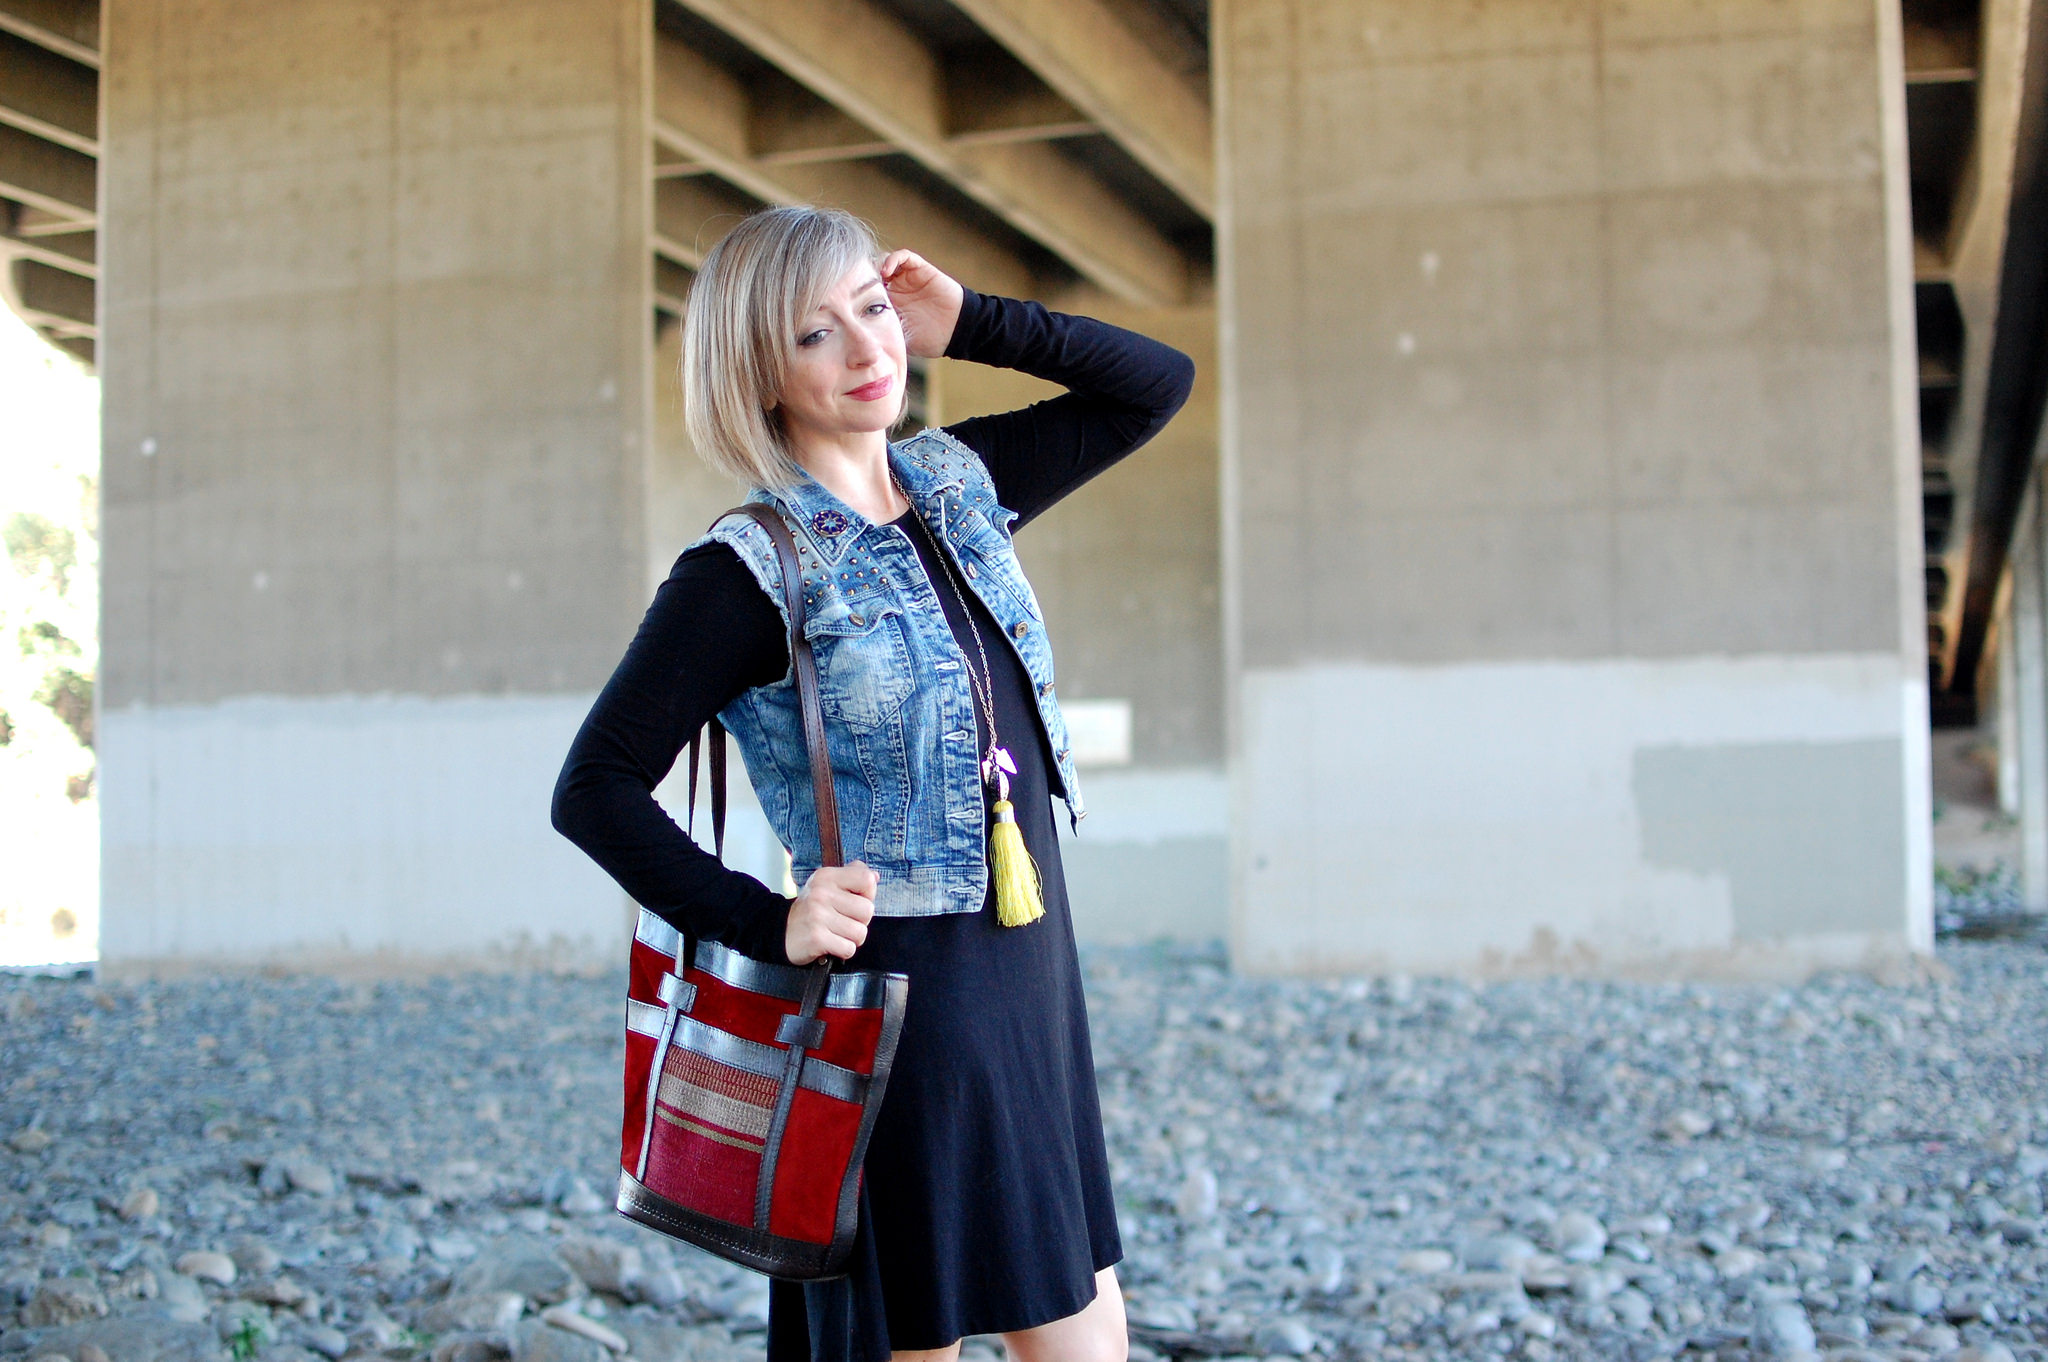 denim vest red suede bag casual lbd daily outfit blog whatiwore2day ootd